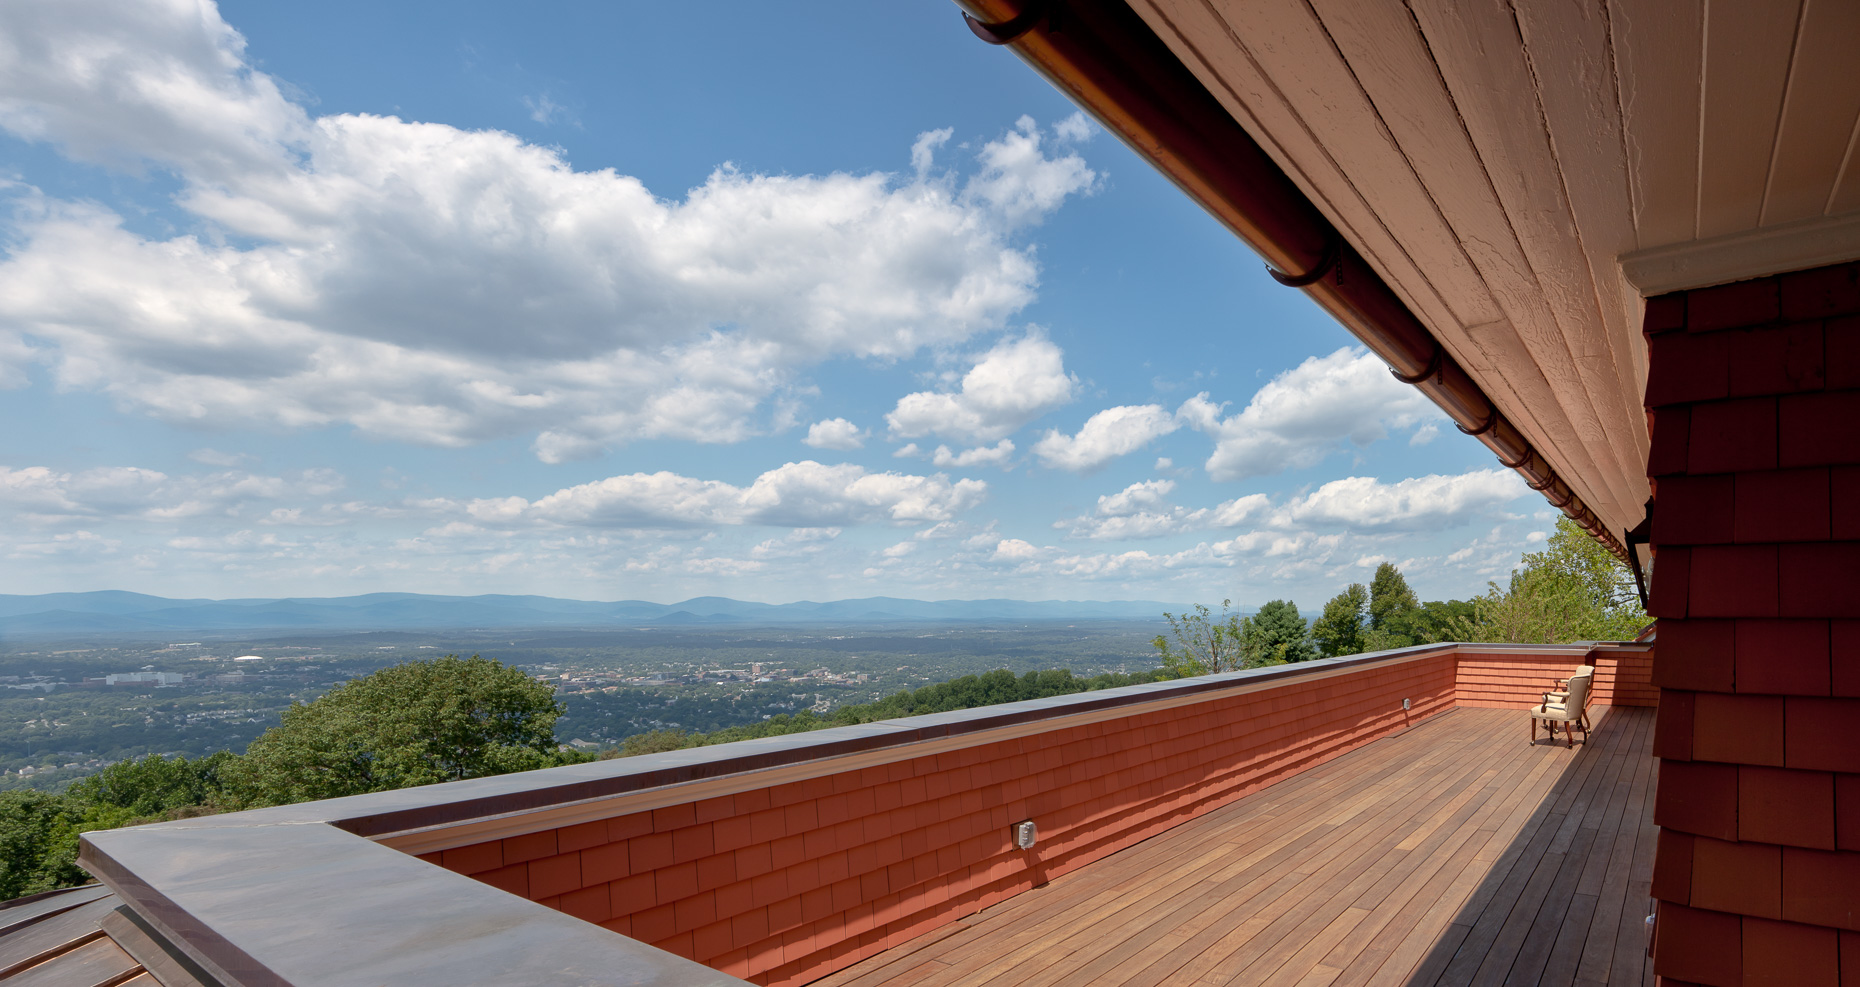 Virginia Hamrick Photography - View from deck at Montalto - Hospitality